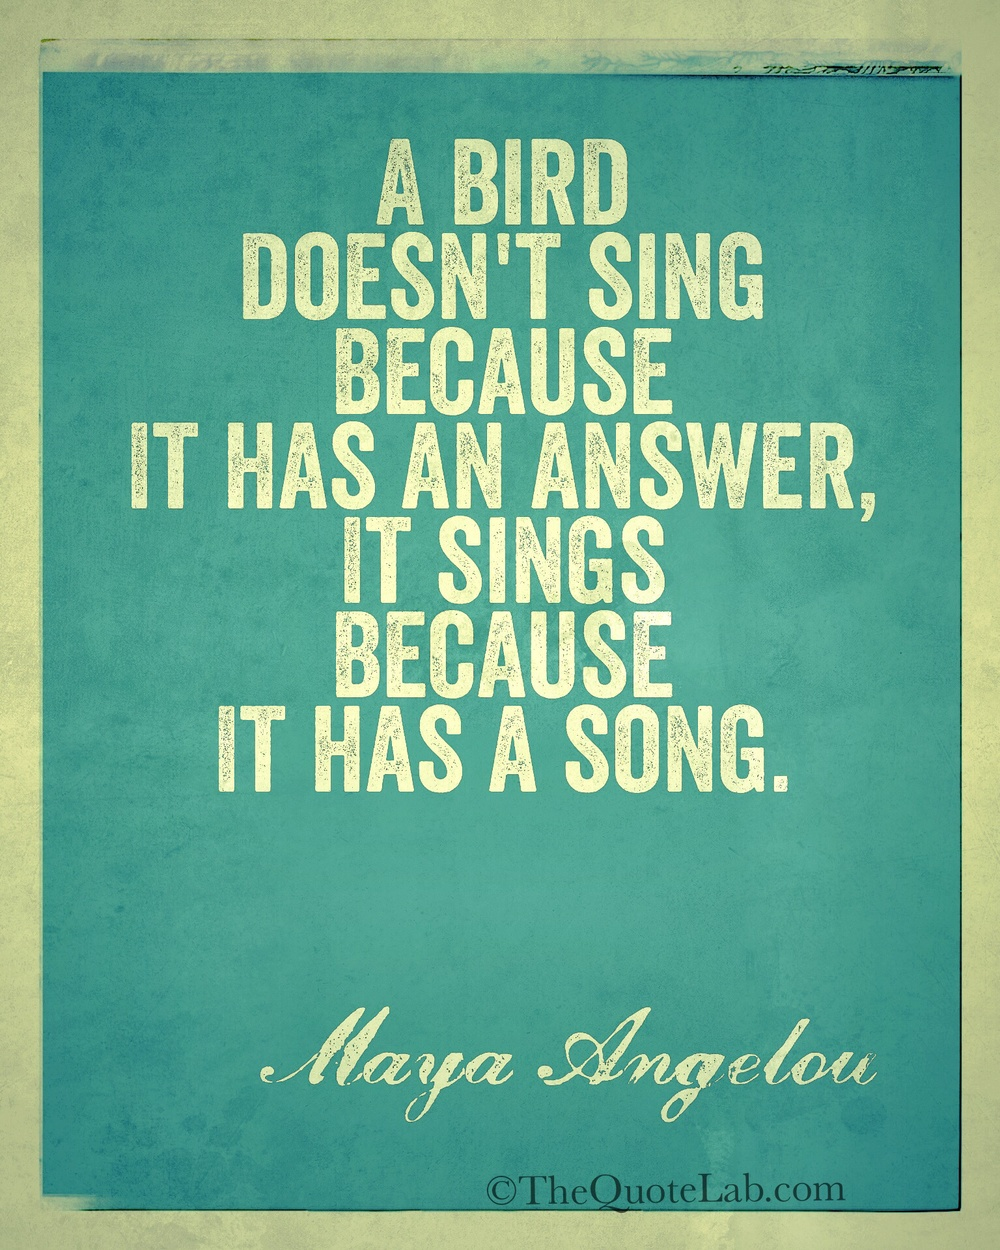 """""""A bird doesn't sing because it has an answer, it sings because it has a song."""" -Maya Angelou"""